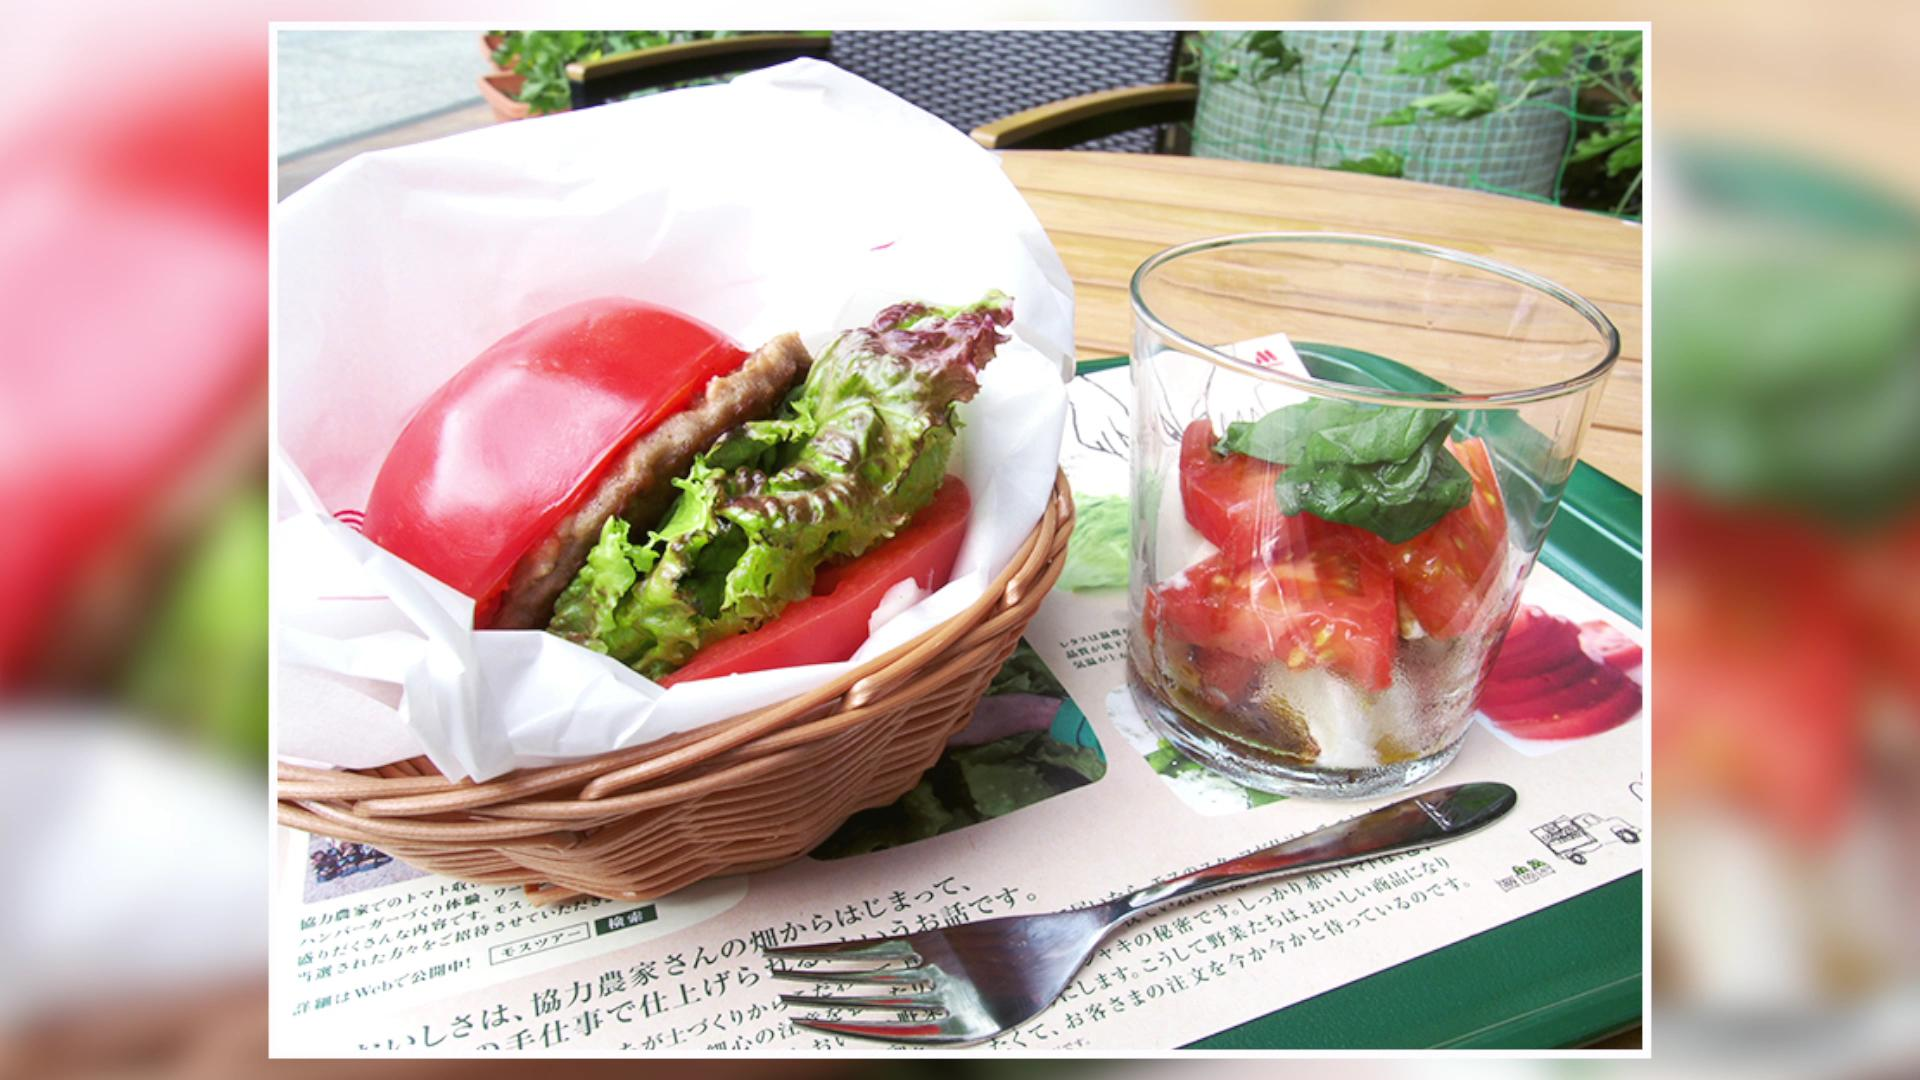 Japanese burger joint replaces bun with tomato slices